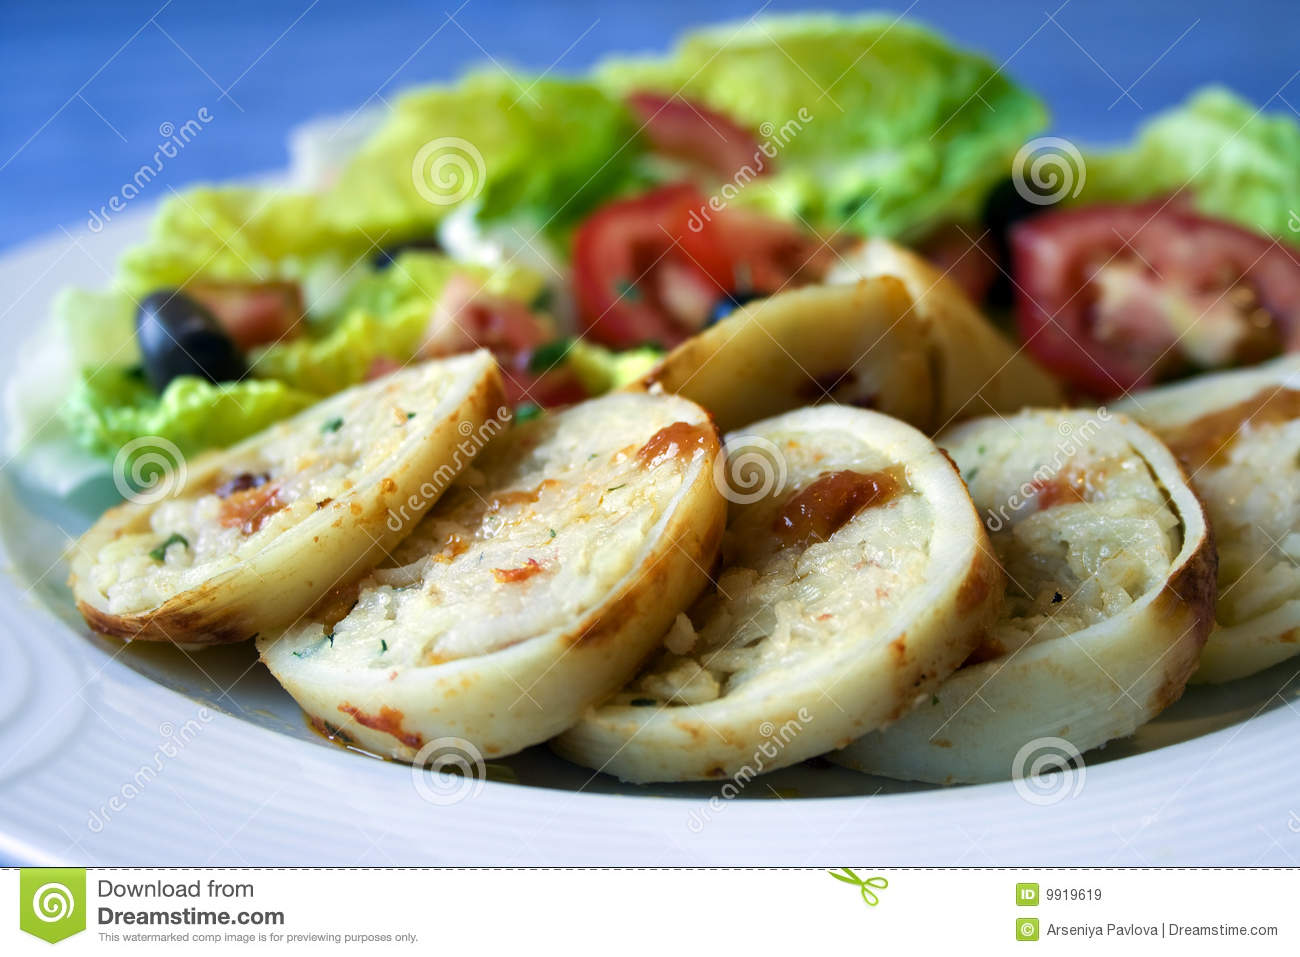 Royalty Free Stock Images: Squid stuffed with rice and greek salad